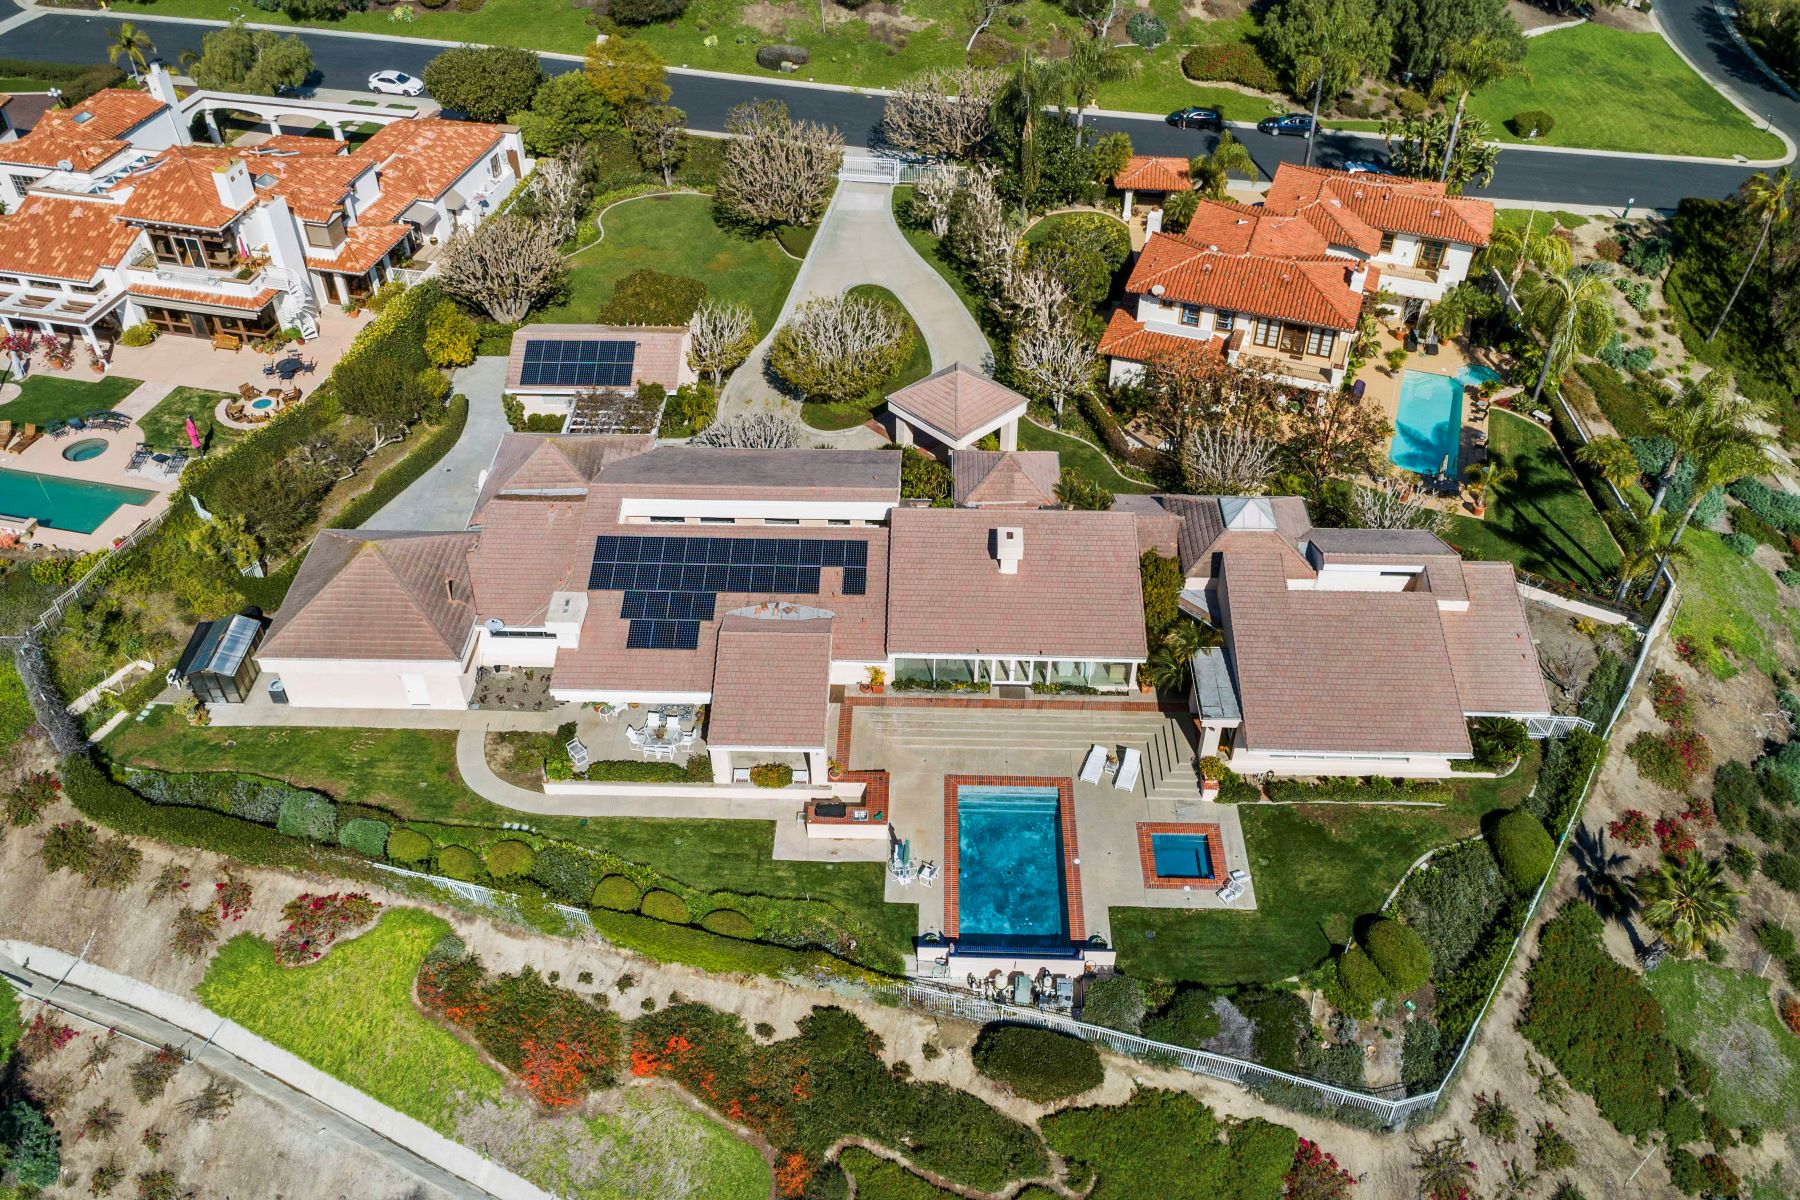 Single Family Homes for Sale at 3 Morning Dove Laguna Niguel, California 92677 United States